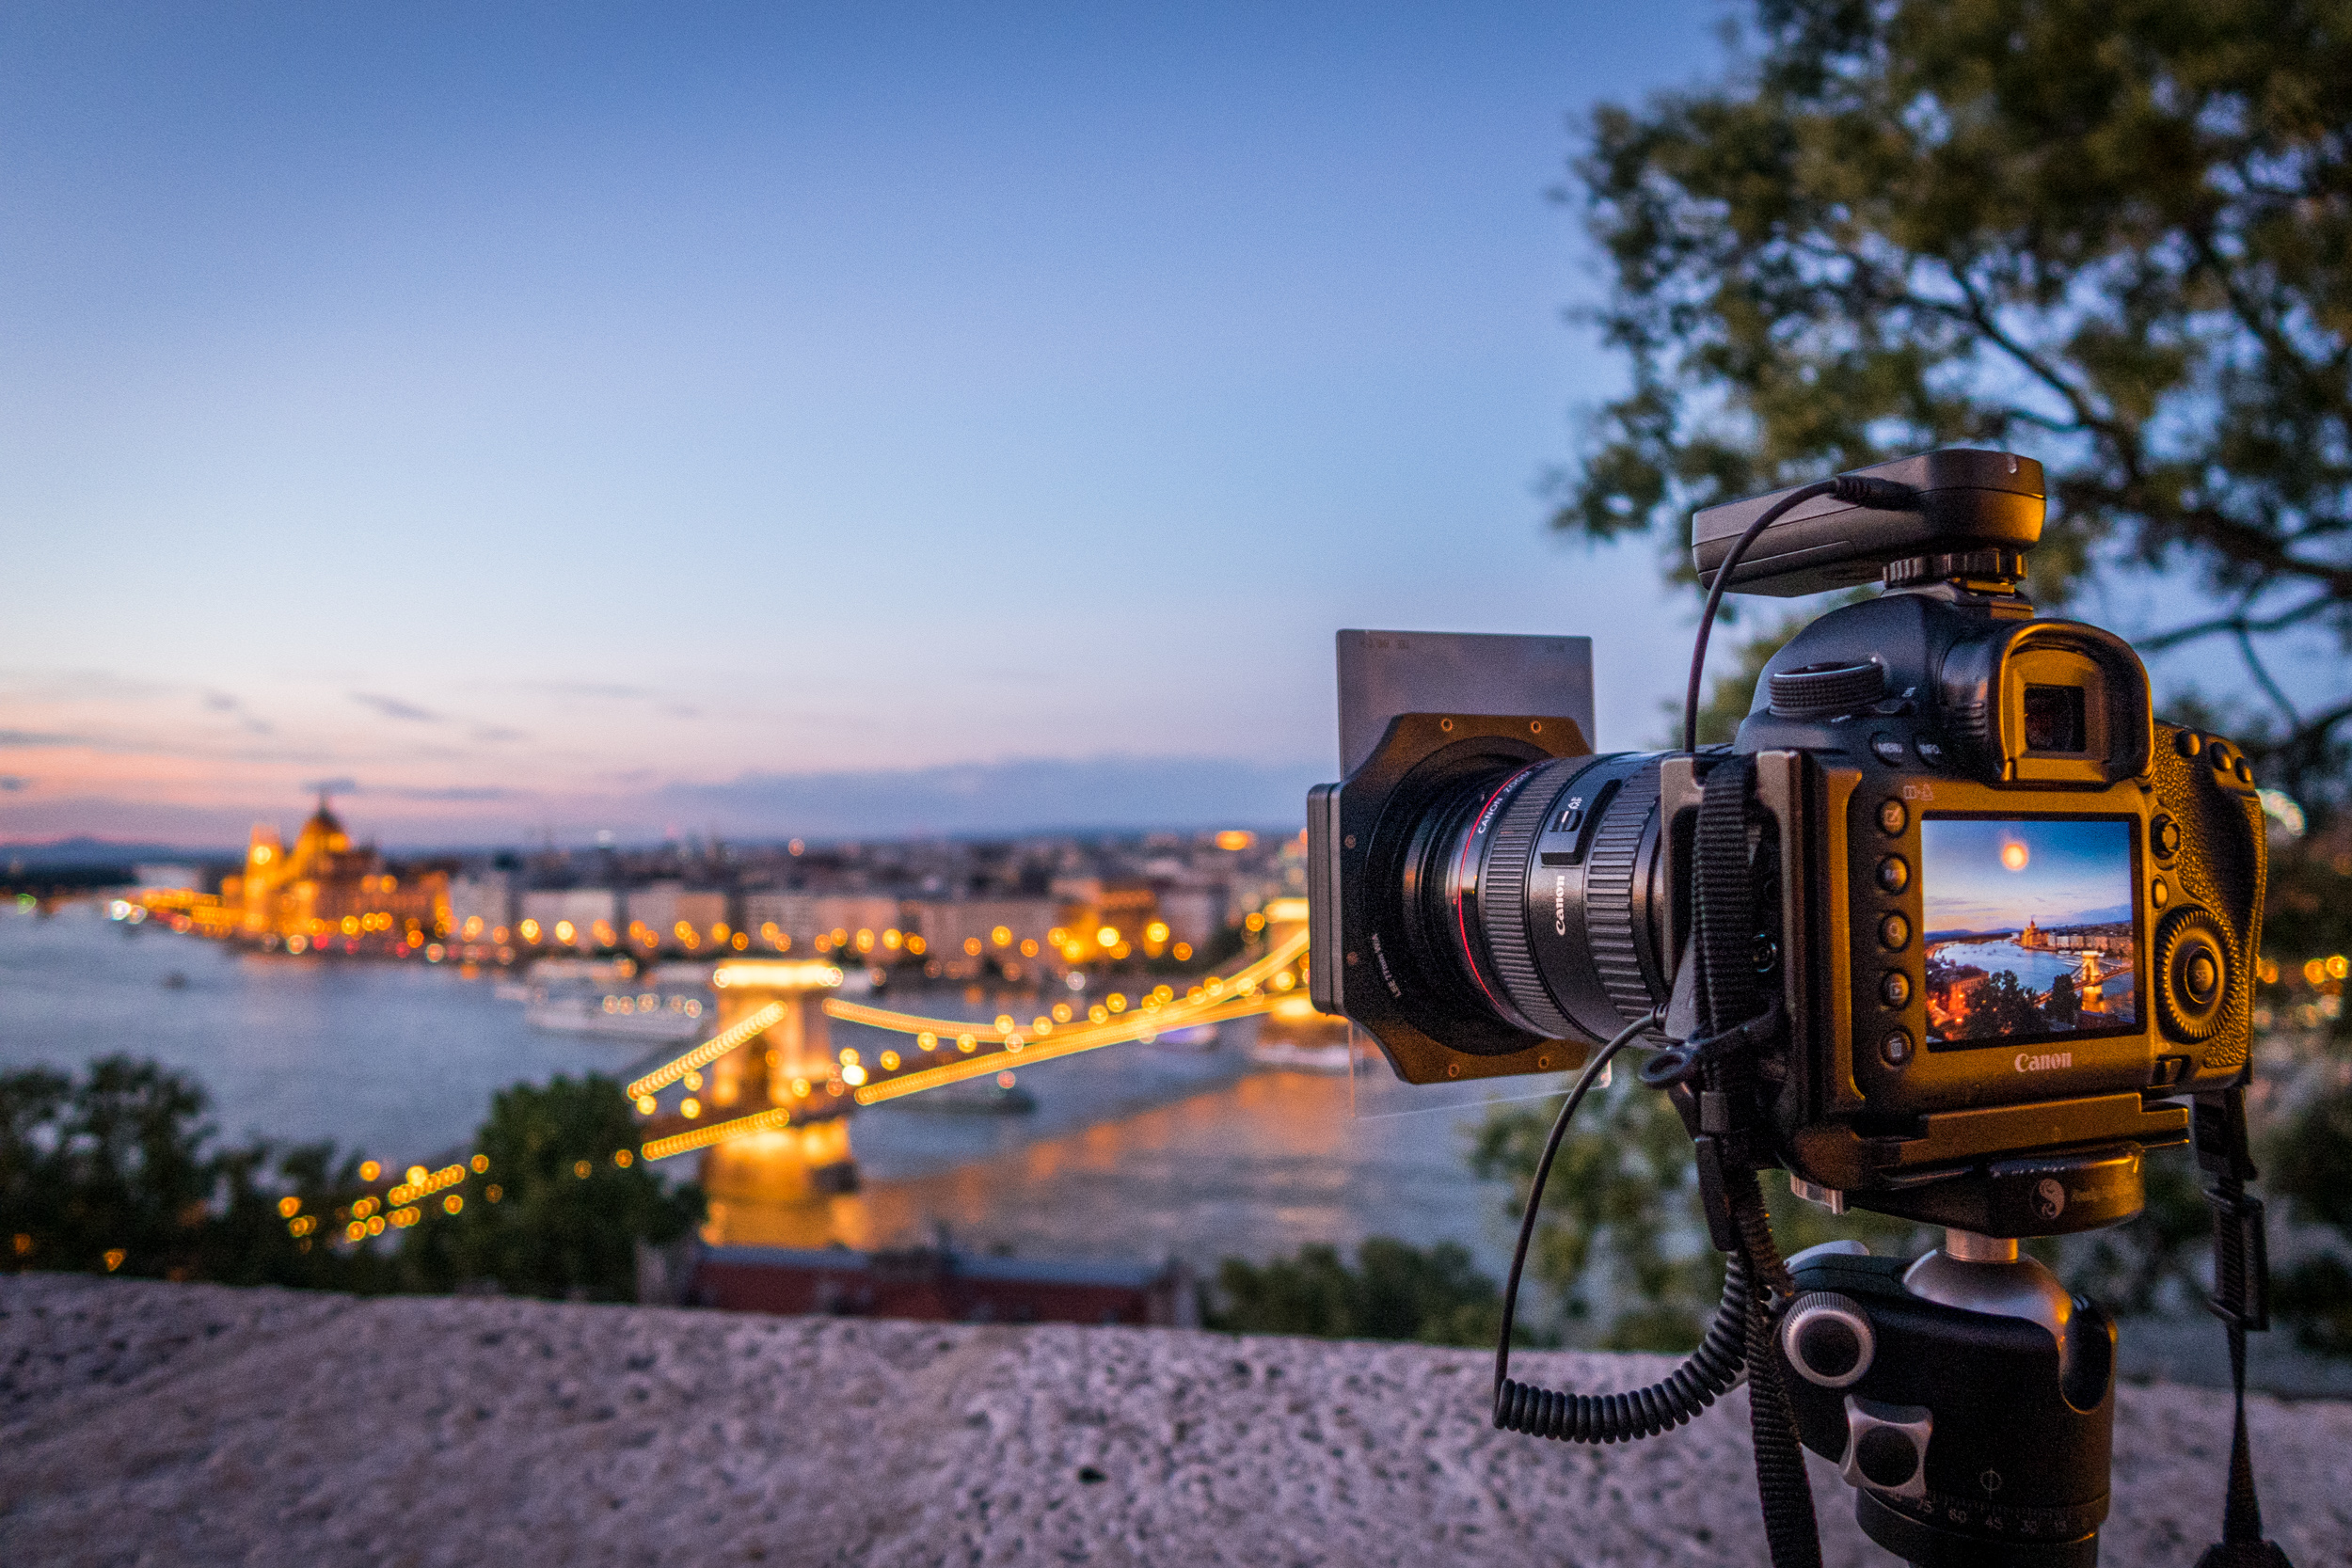 Example of my set up on Buda Castle